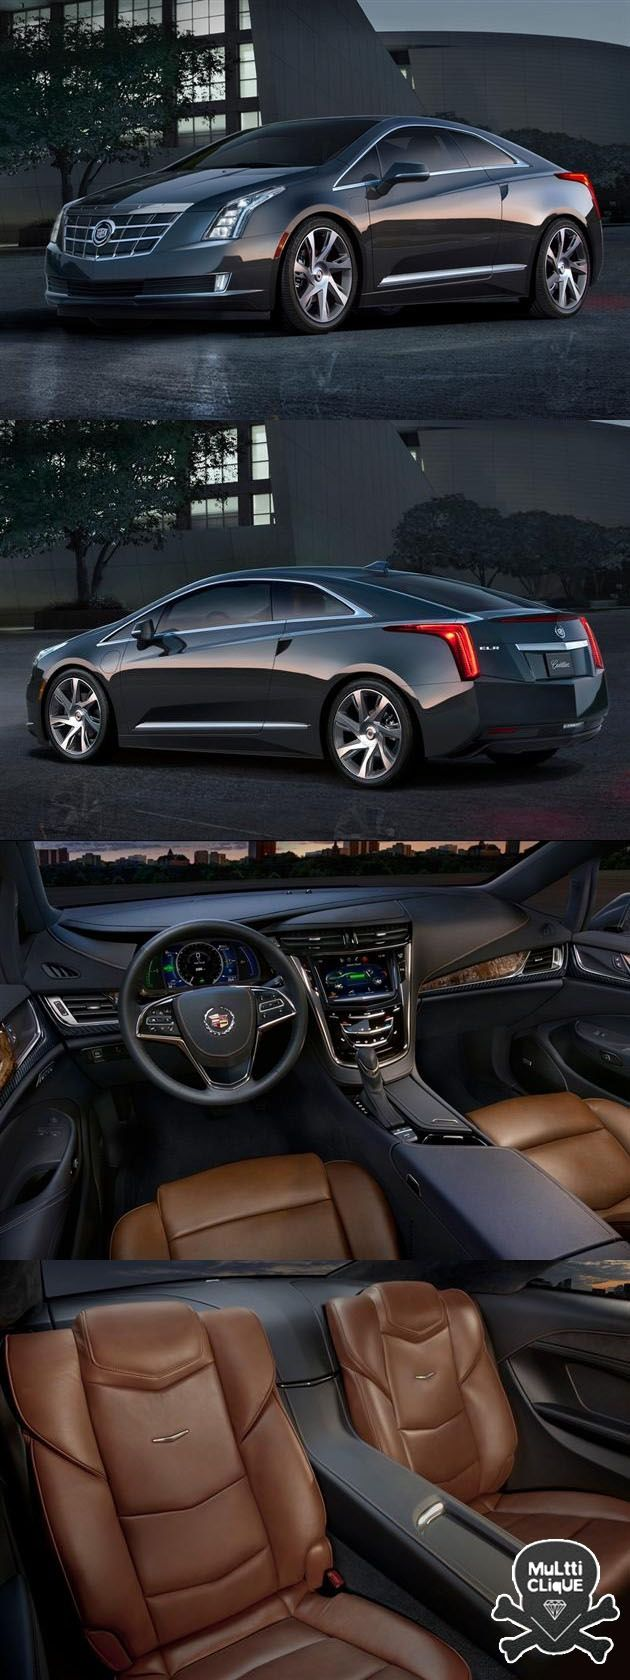 I would really prefer a 4-Door Cadillac 2014 but you know what?....I'll Take This One too without hesitation!  #Cadillac #LOVE